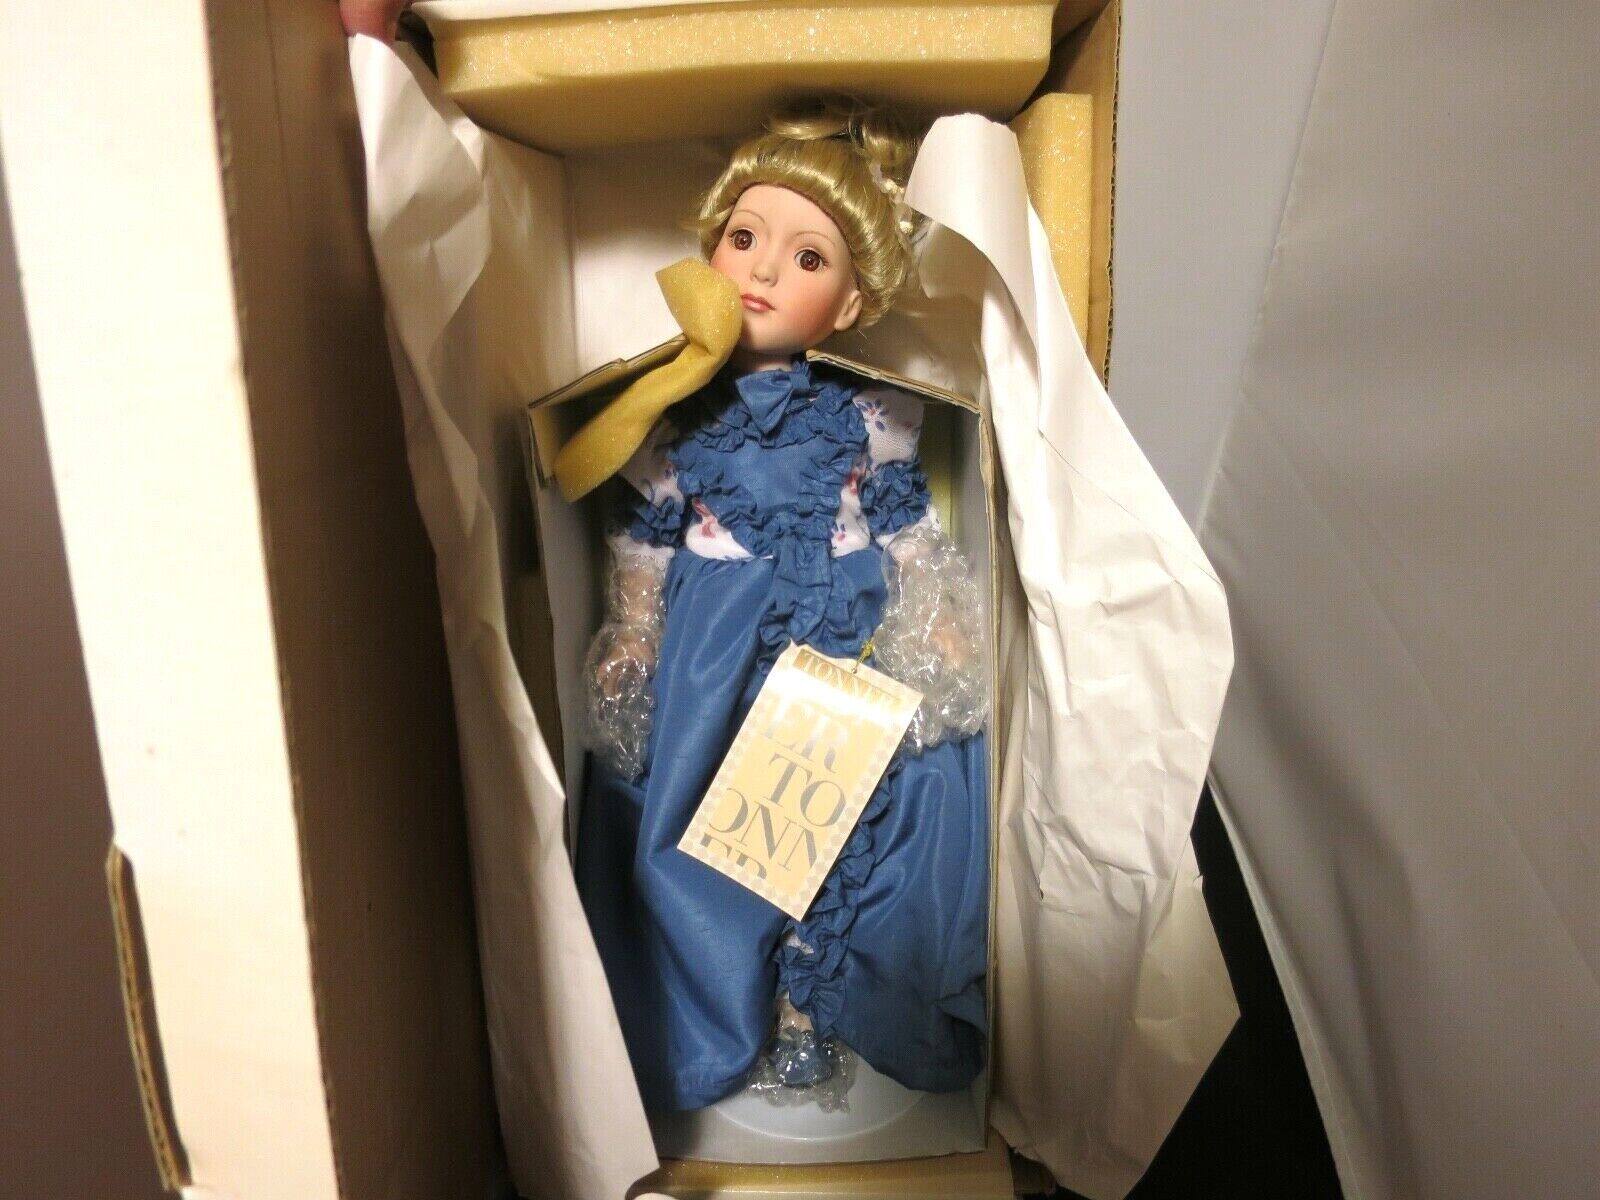 ROBERT TONNER ARIANA PORCELAIN DOLL 1999 UFDS 50TH ANNIVERSARY CONVENTION 15